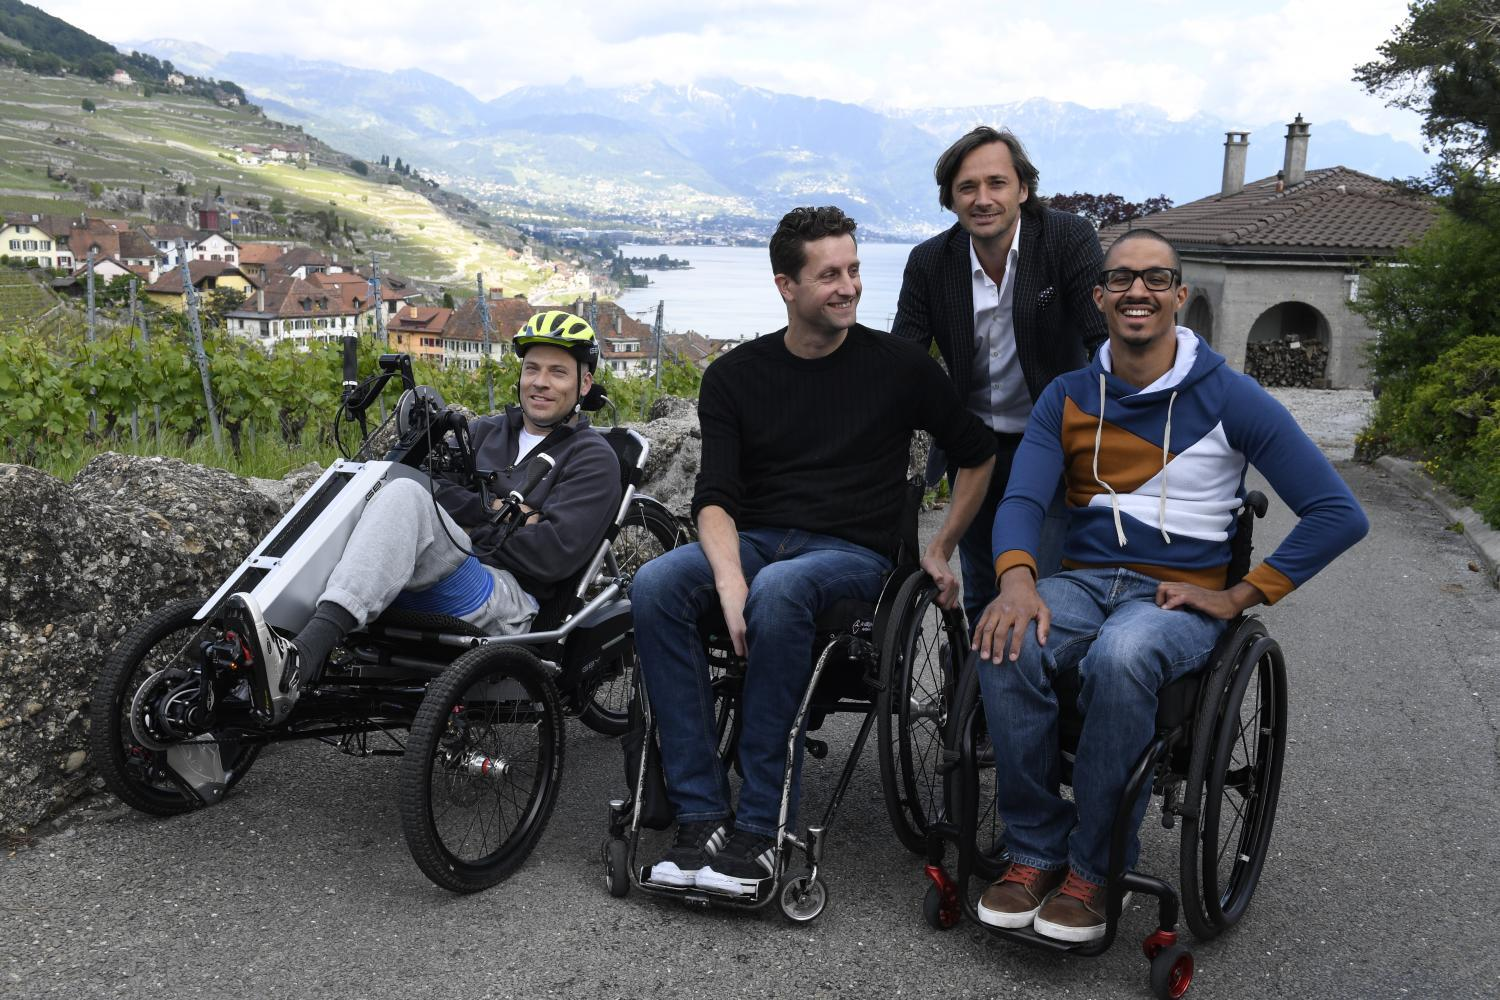 Three patients with partial or complete lower-limb paralysis